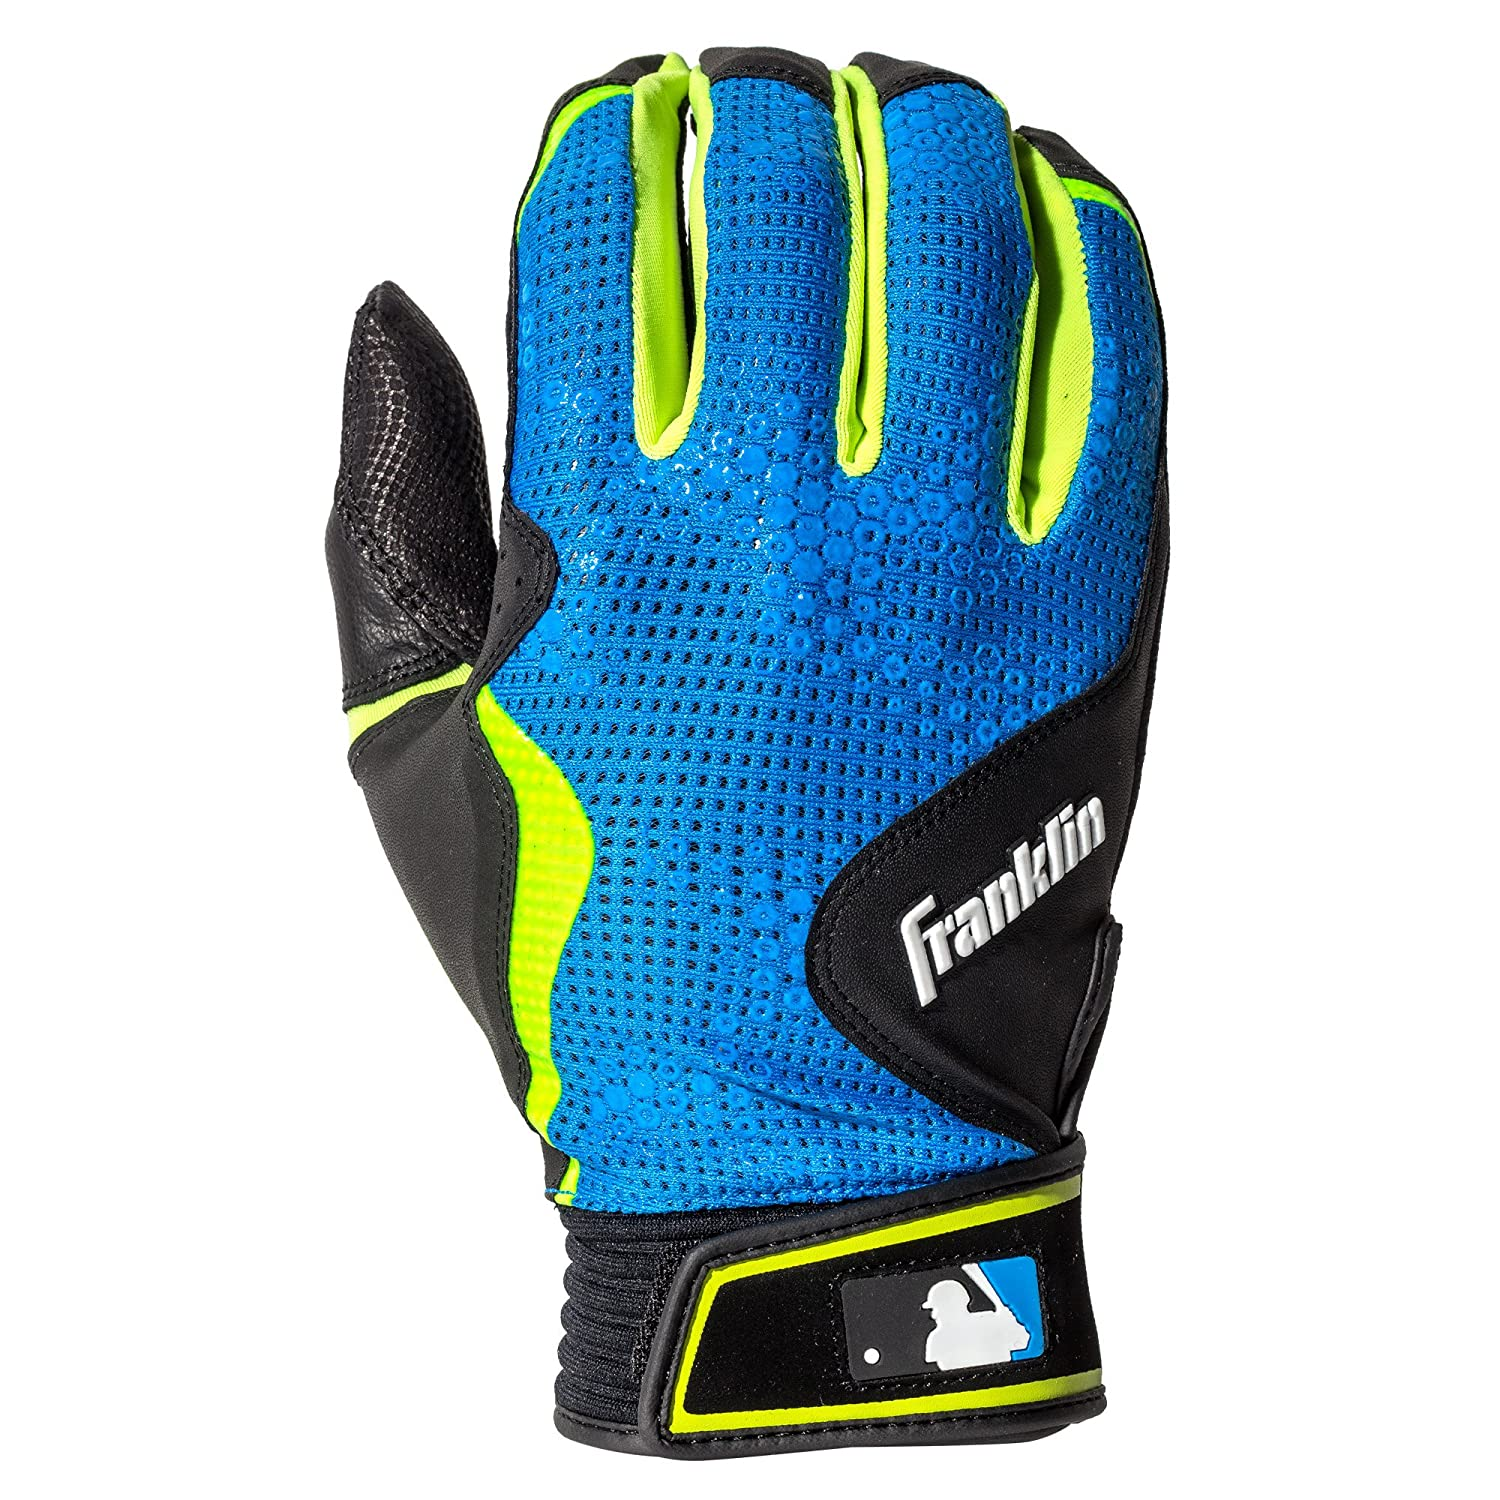 フランクリンスポーツMLB Freeflexシリーズバッティング手袋 B01ITQNPIK Adult Medium|black/Electric Blue black/Electric Blue Adult Medium